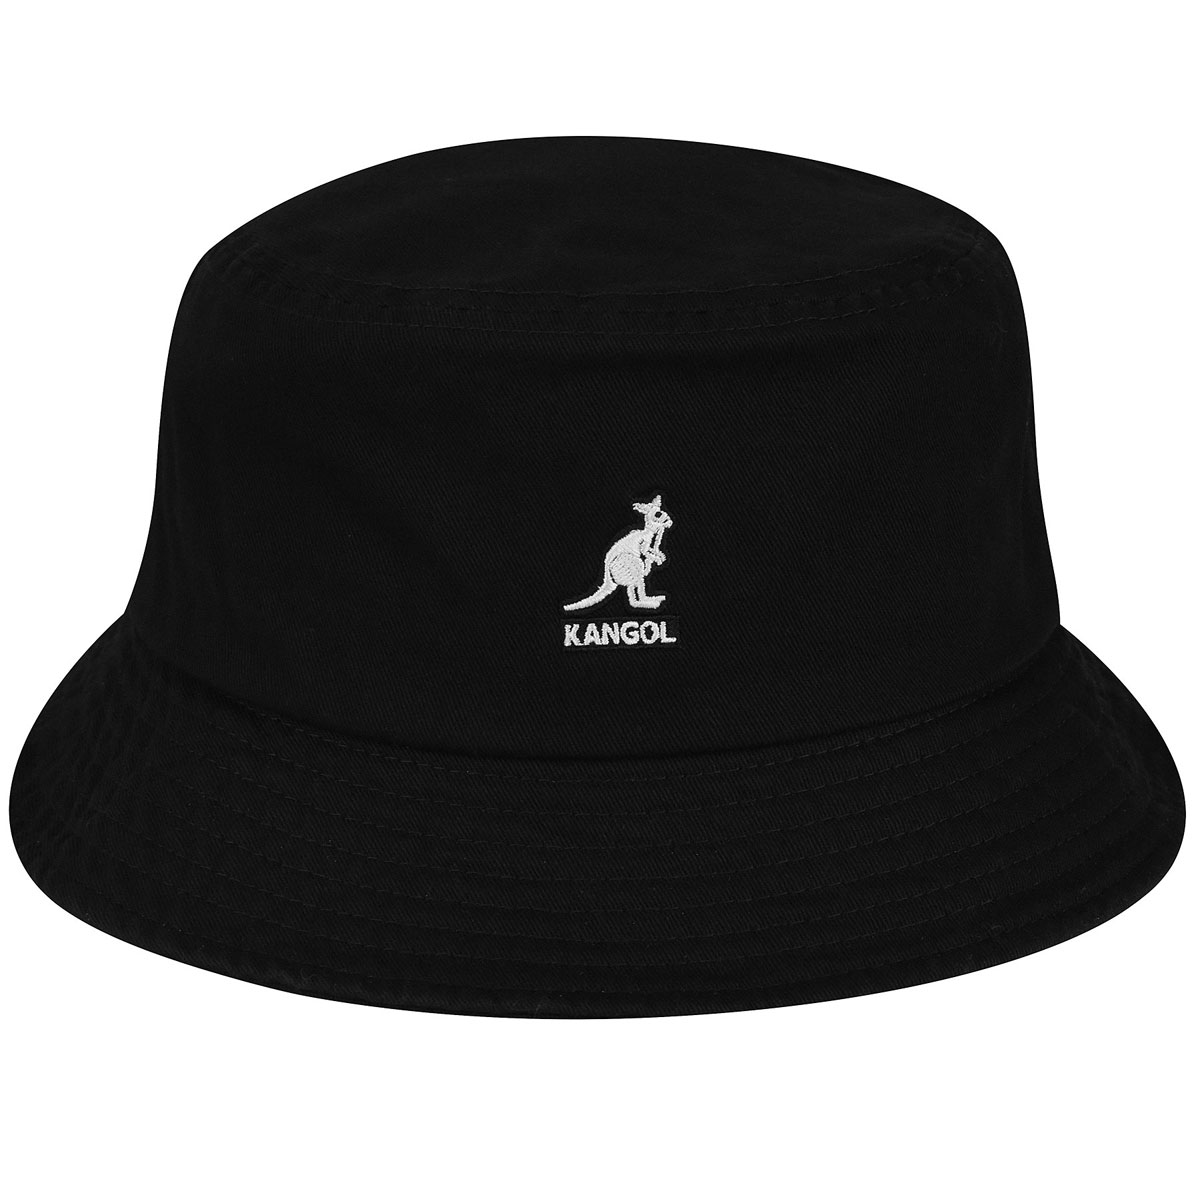 KANGOL - Men s Kangol Washed Bucket Hat - Walmart.com a2029a854e3